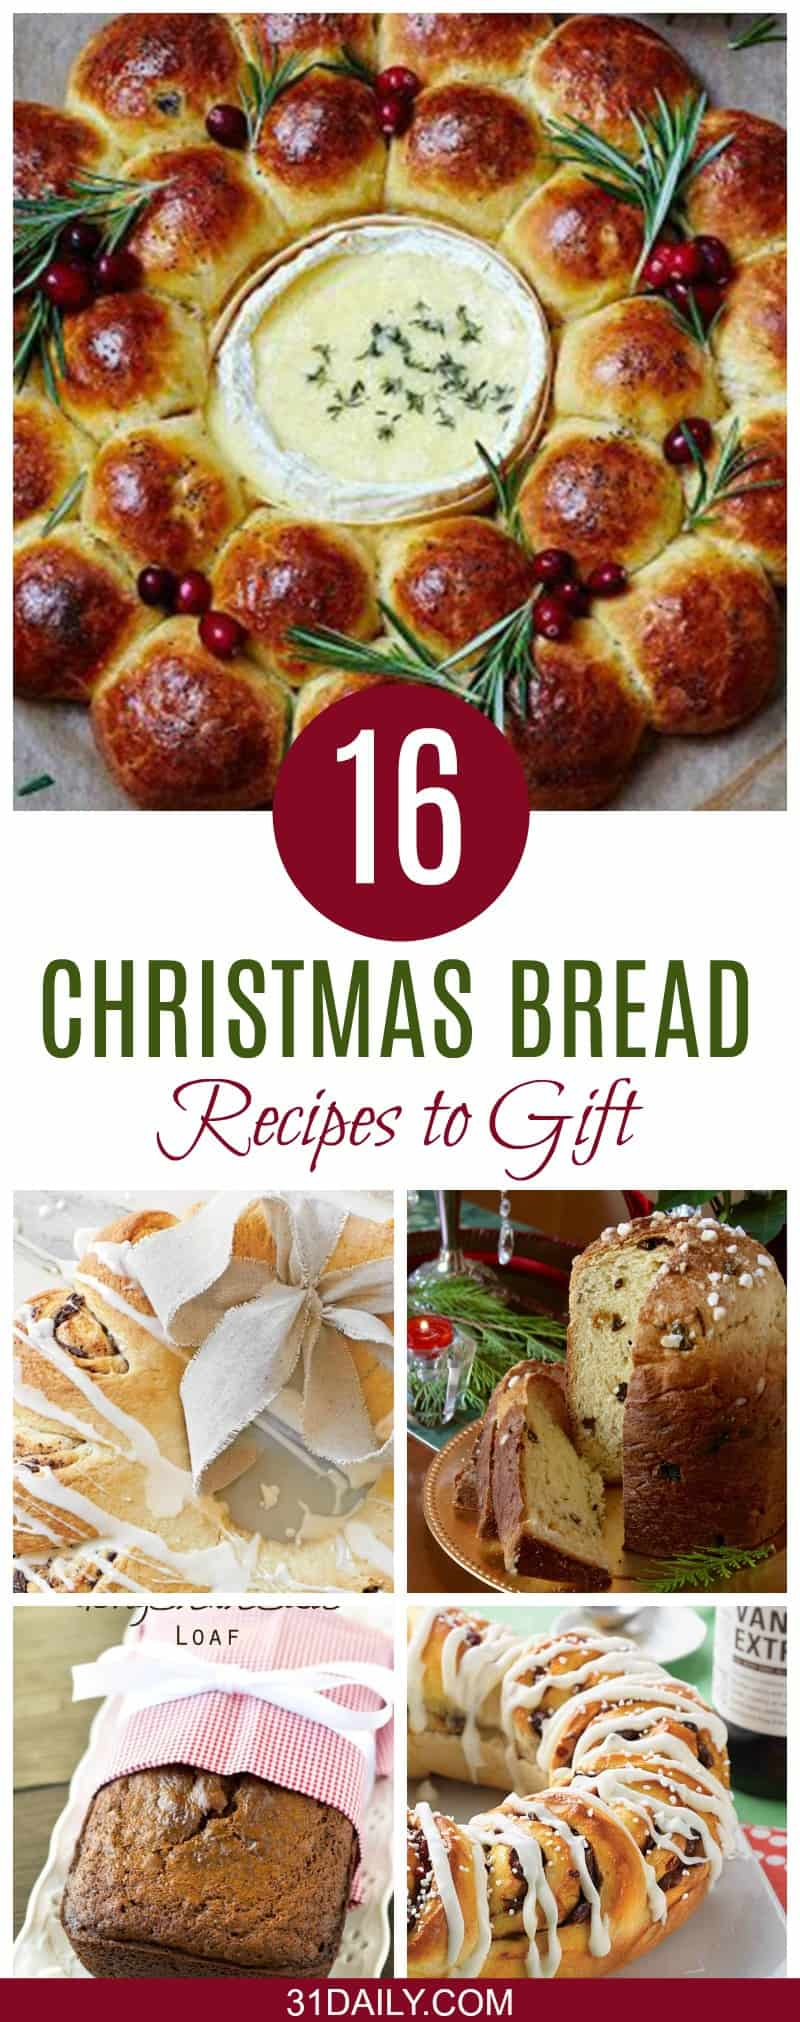 16 Holiday Loaves and Christmas Bread to Bake for Gifts - 31 Daily